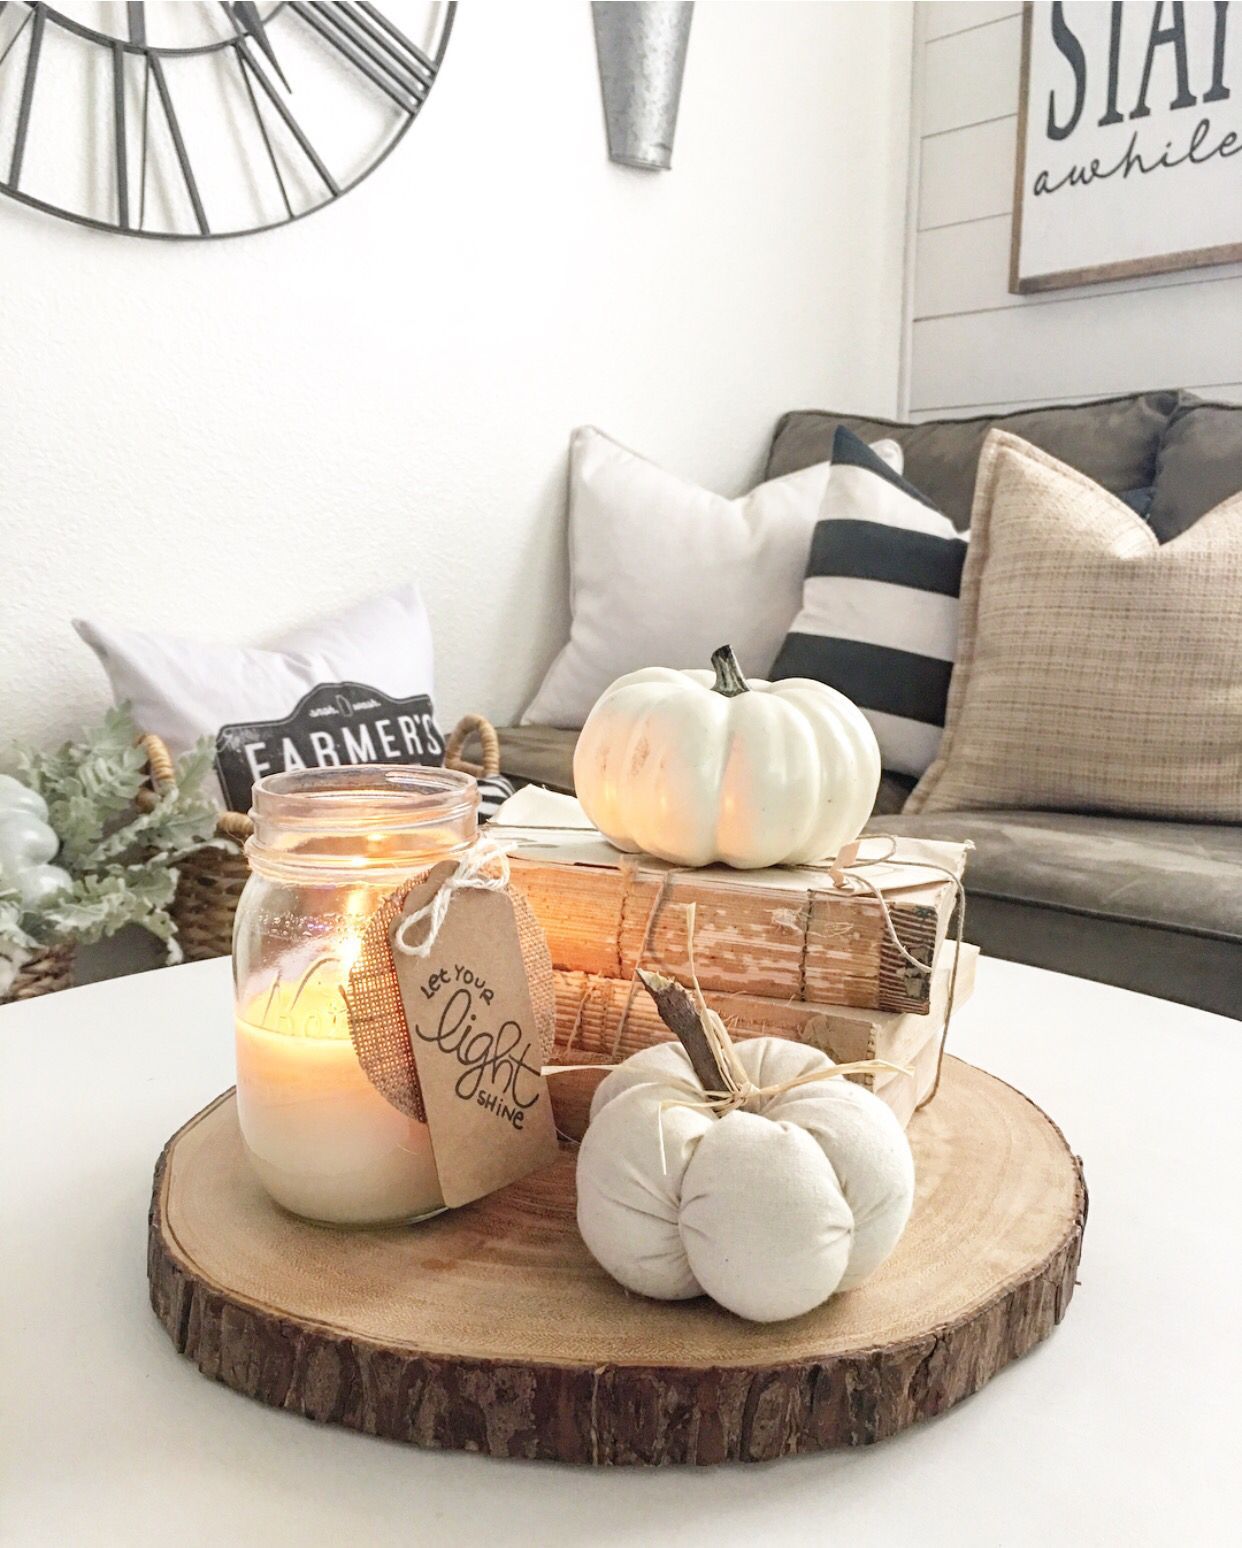 Kitchen Decor For Fall: Simple Fall Decor - IG @nellyfriedel